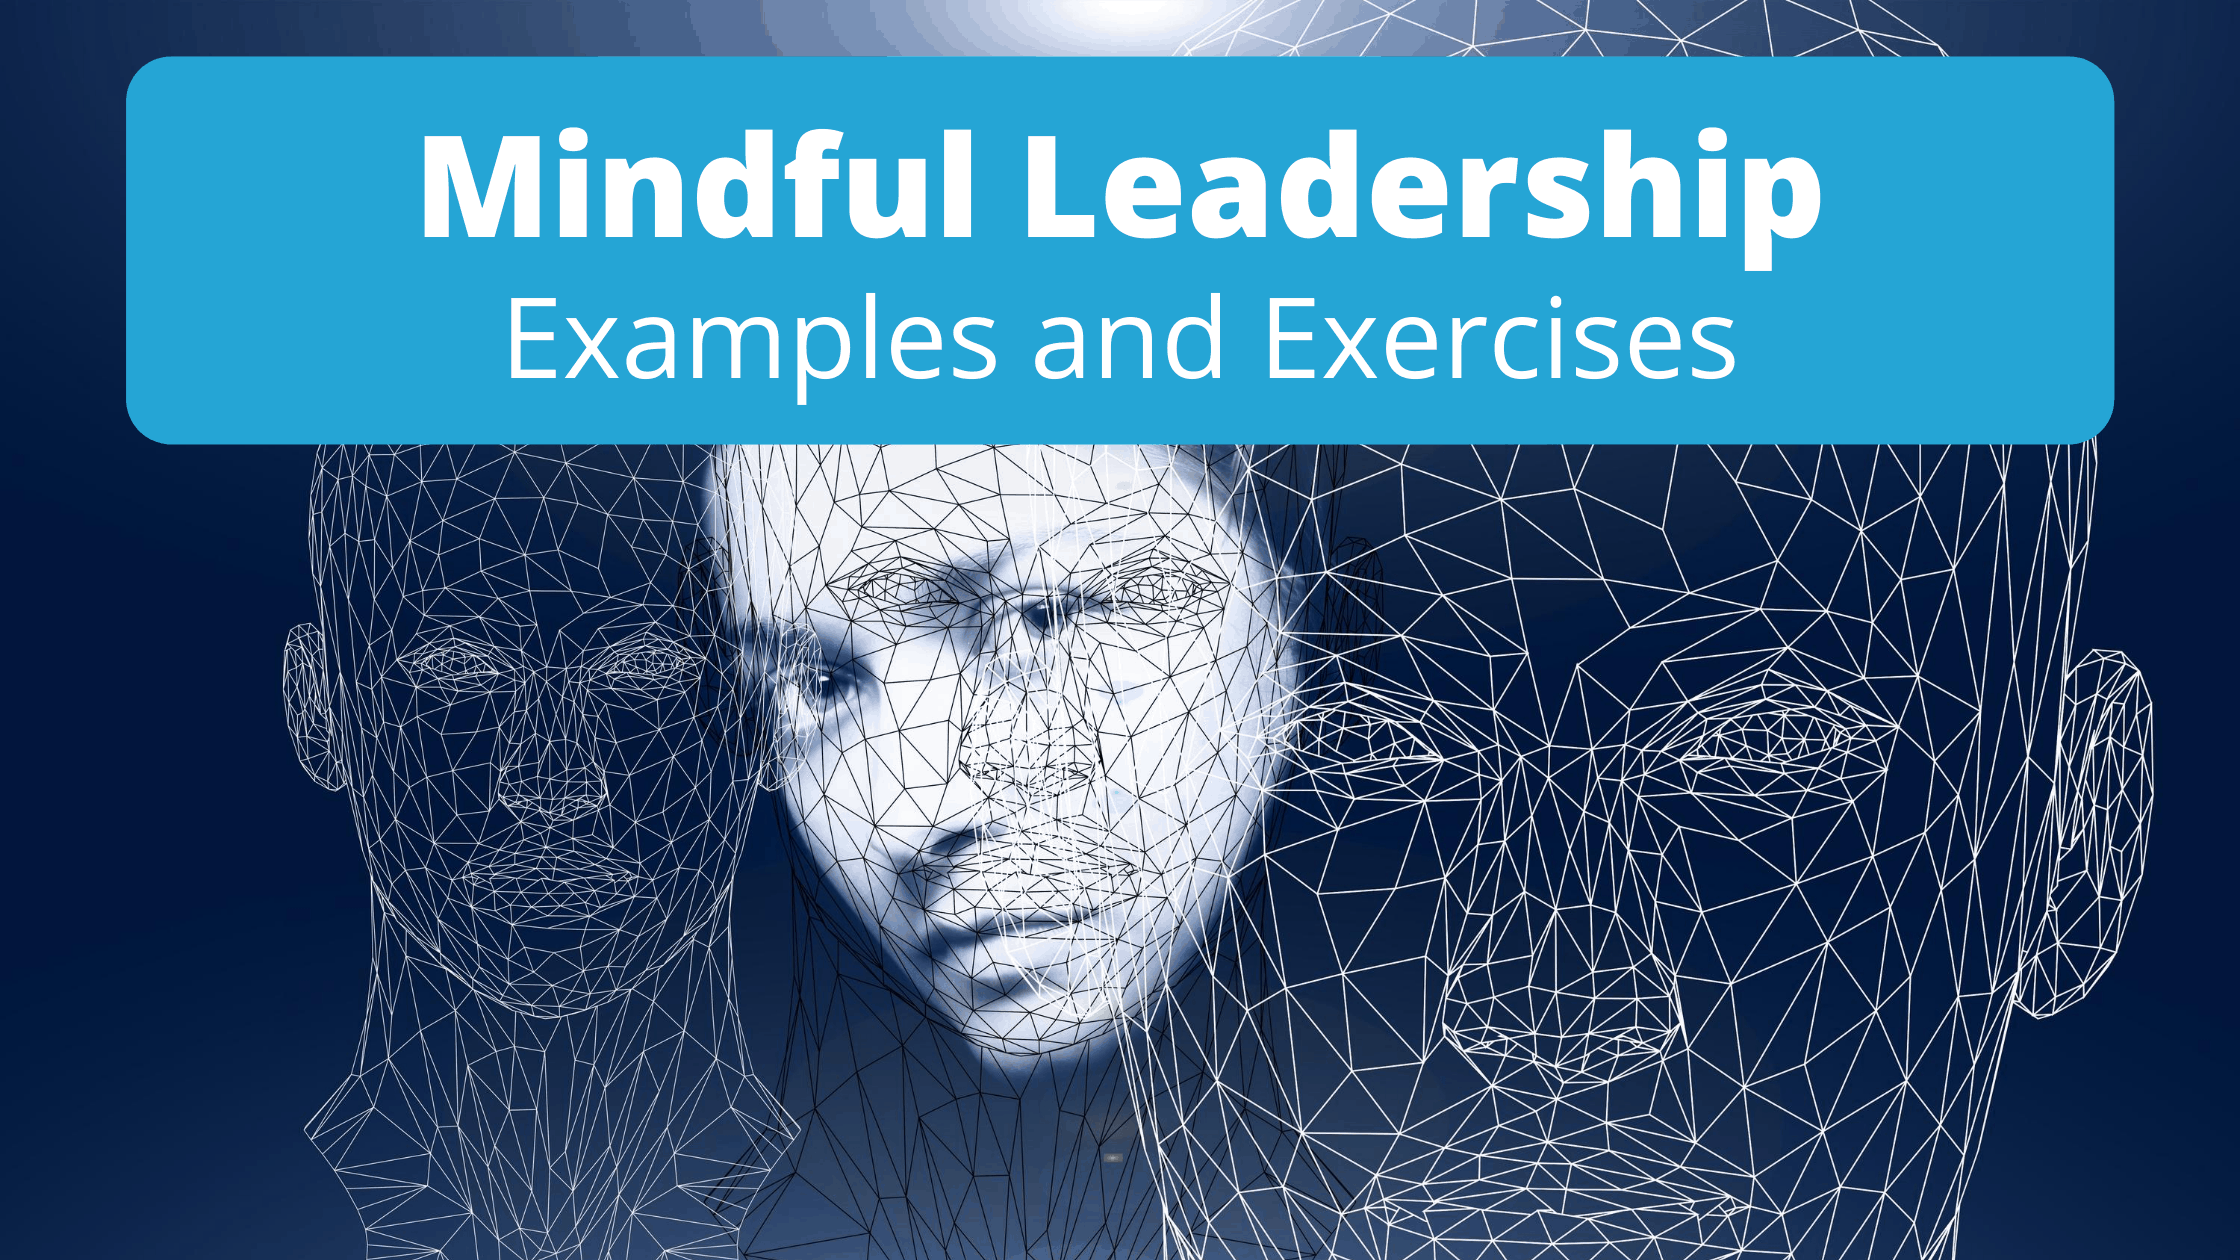 image mindful leadership banner